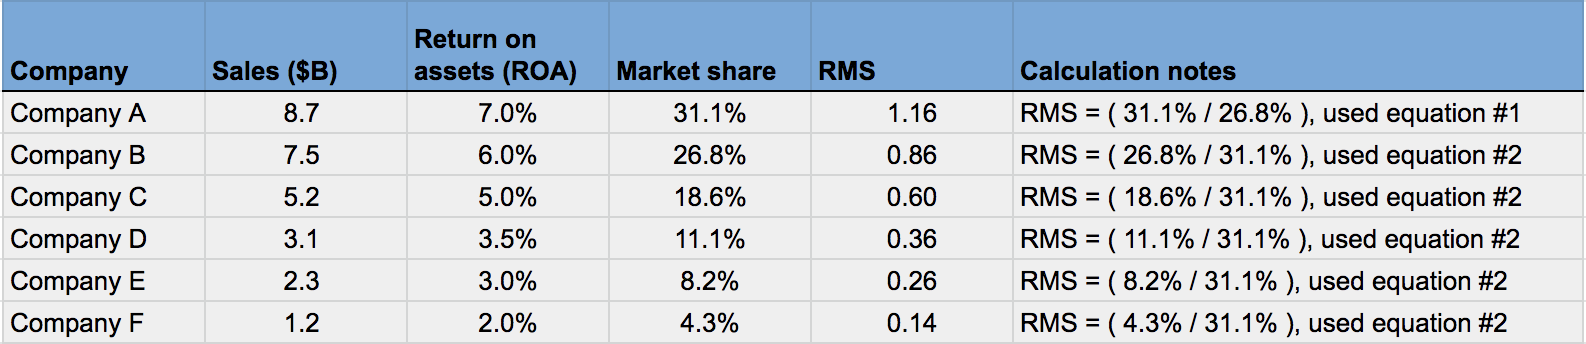 Example of calculating relative market share, part 2